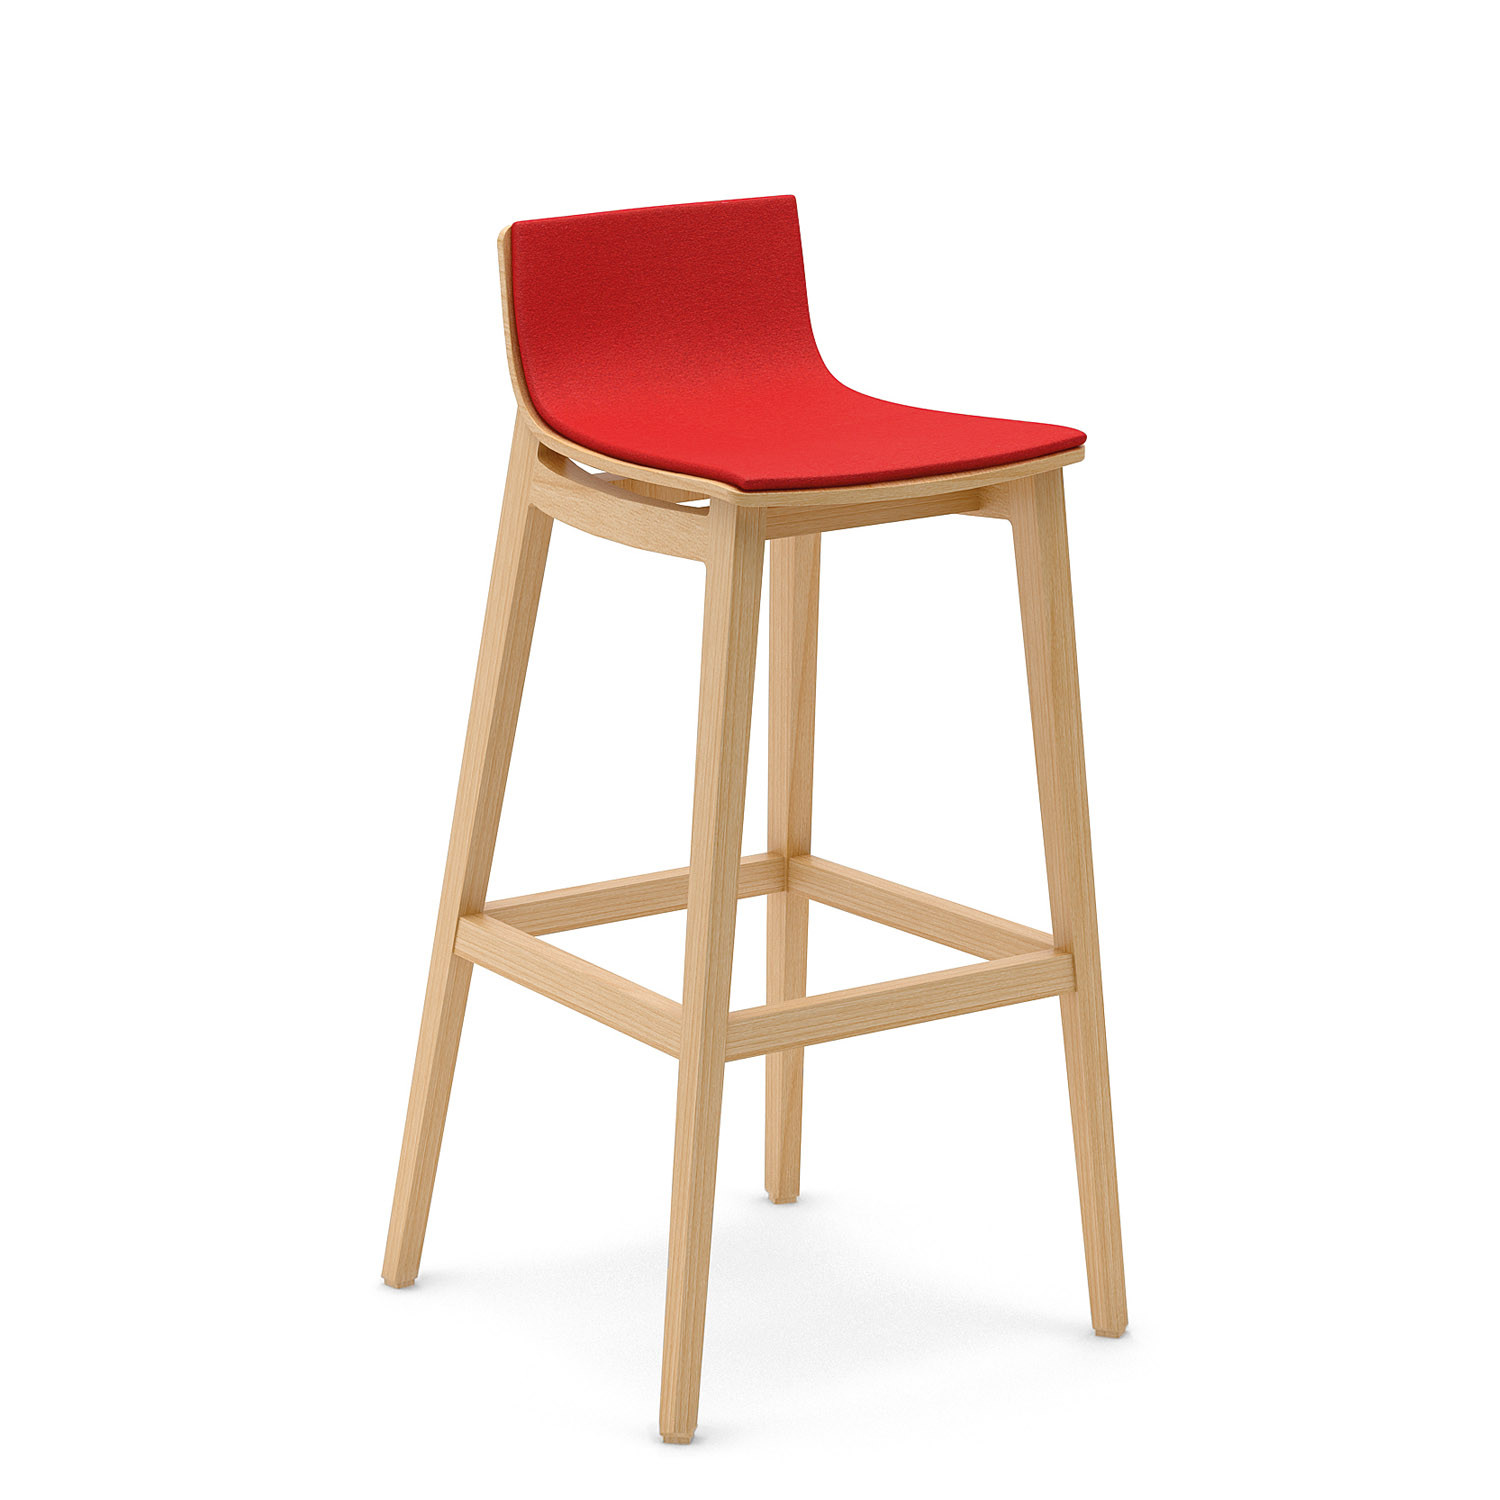 Emma Upholstered Bar Stool by Connection